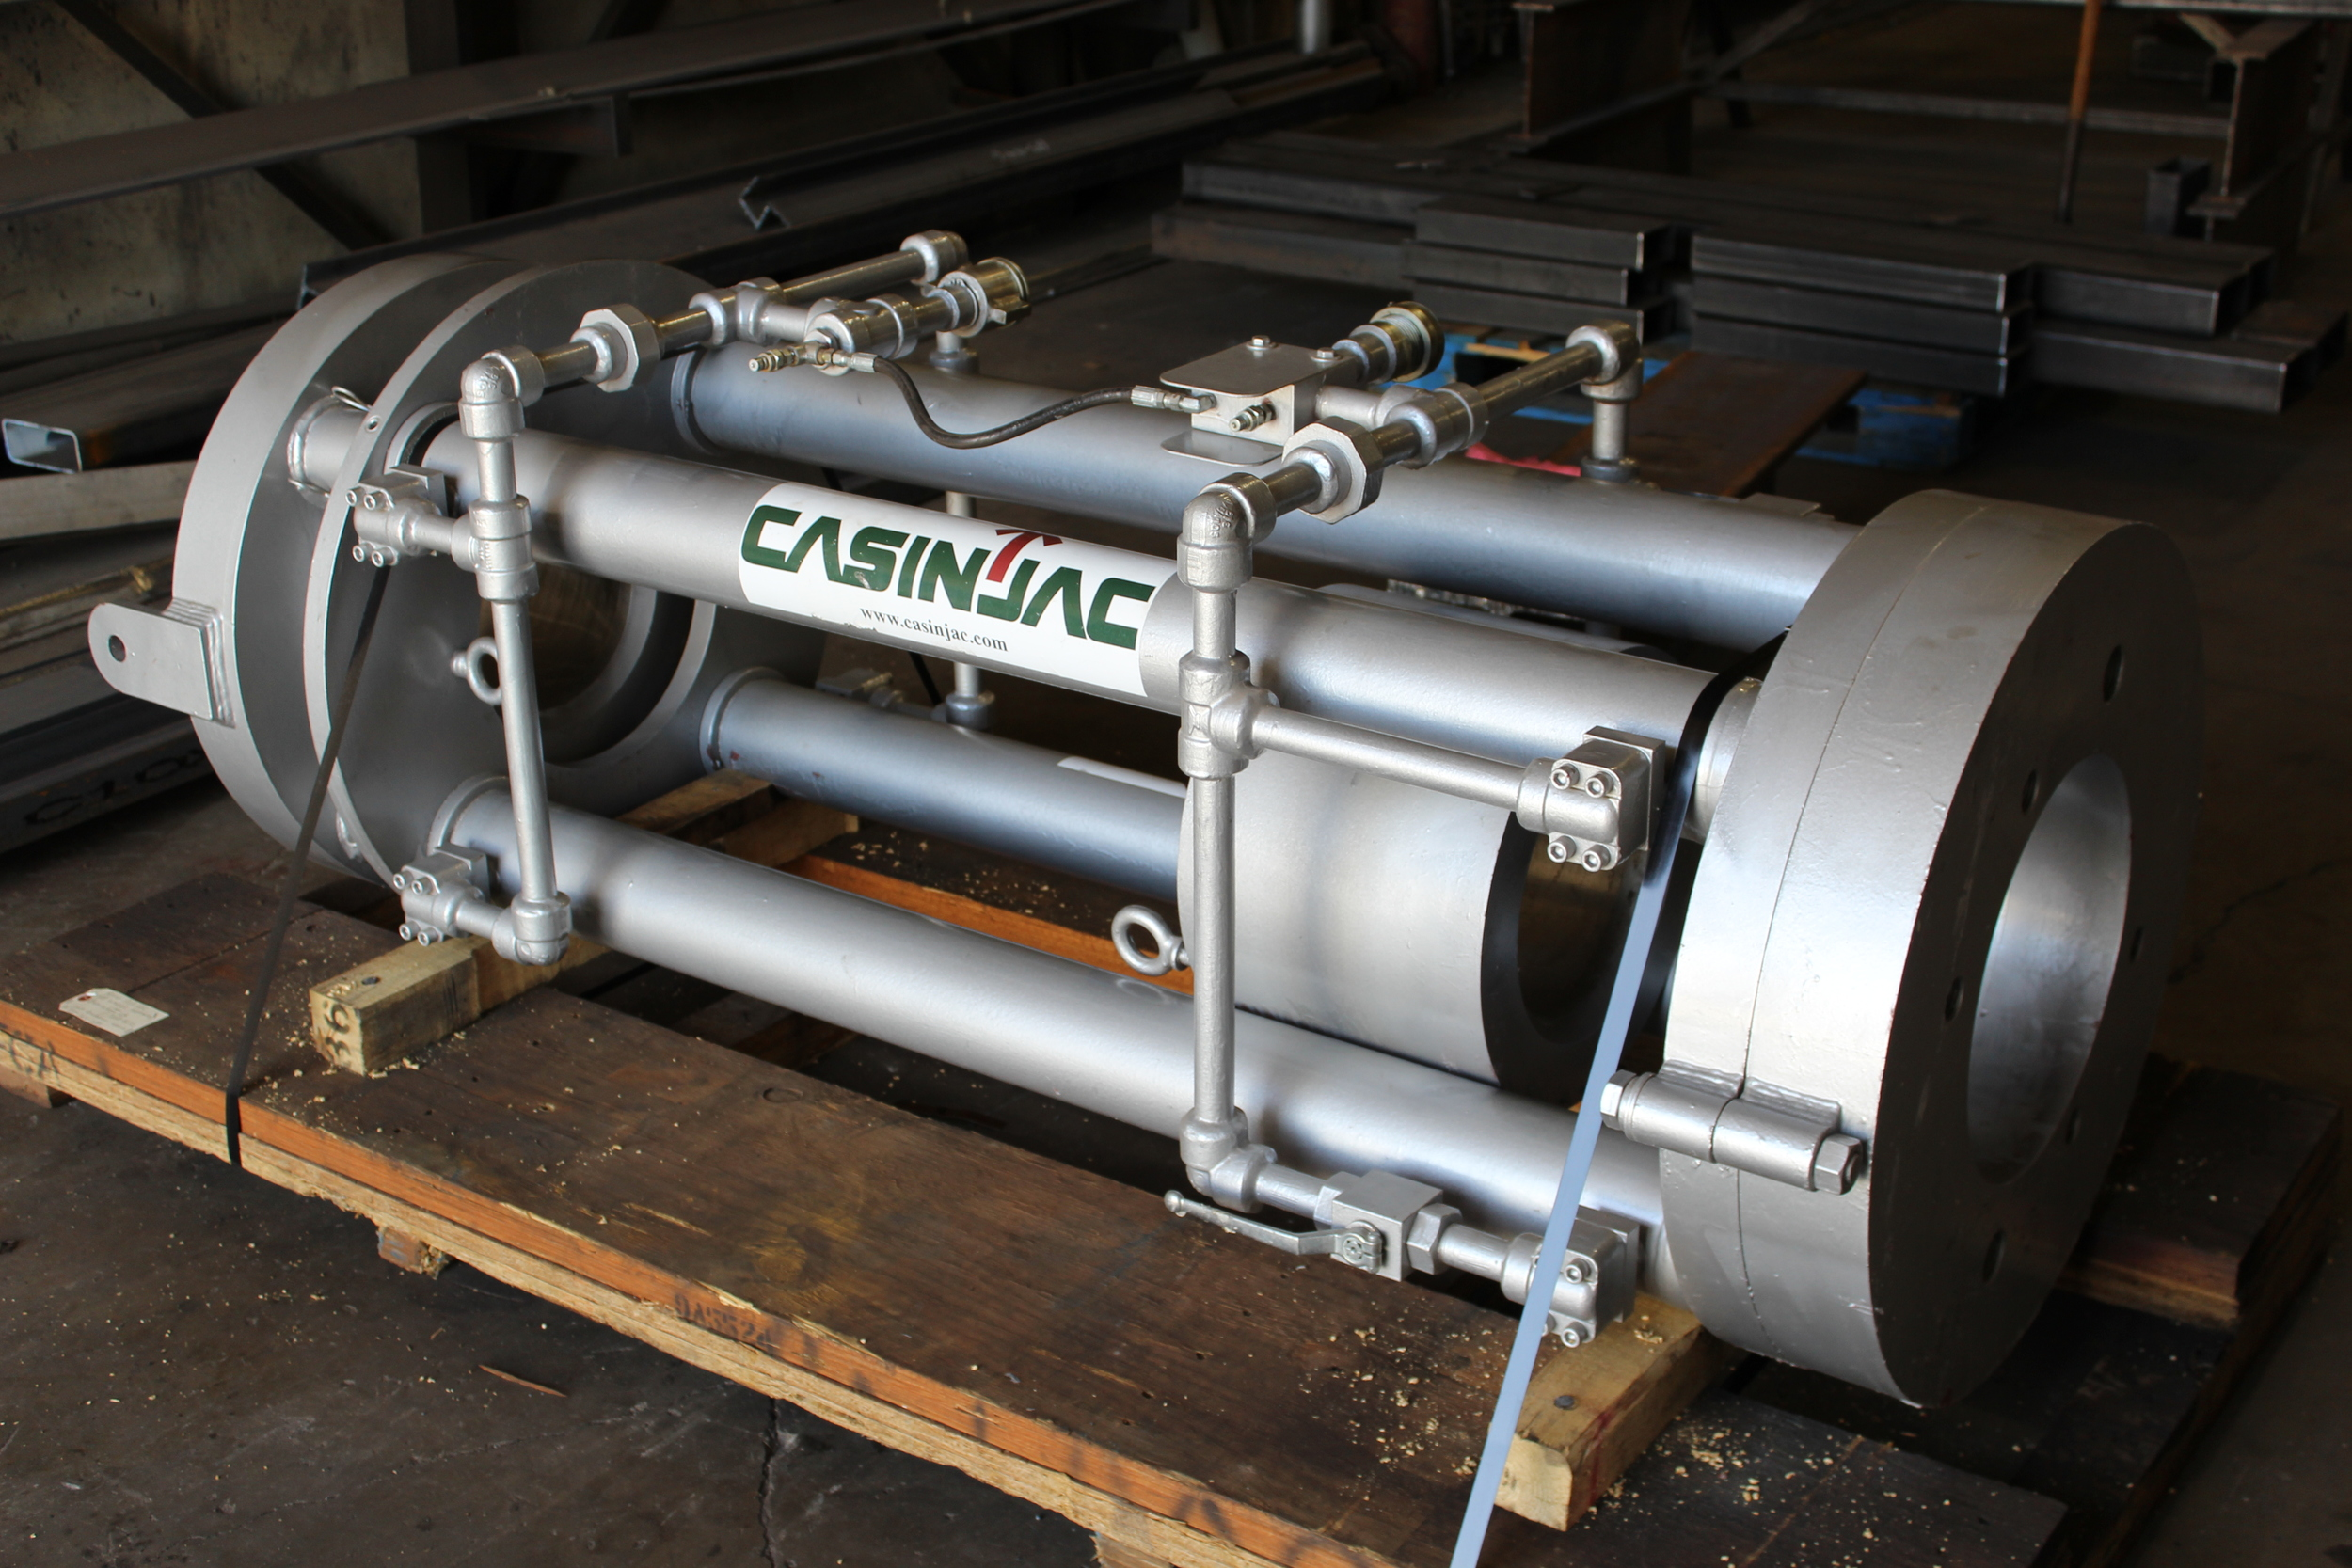 Casinjac Model 125 casing jack ready for delivery.